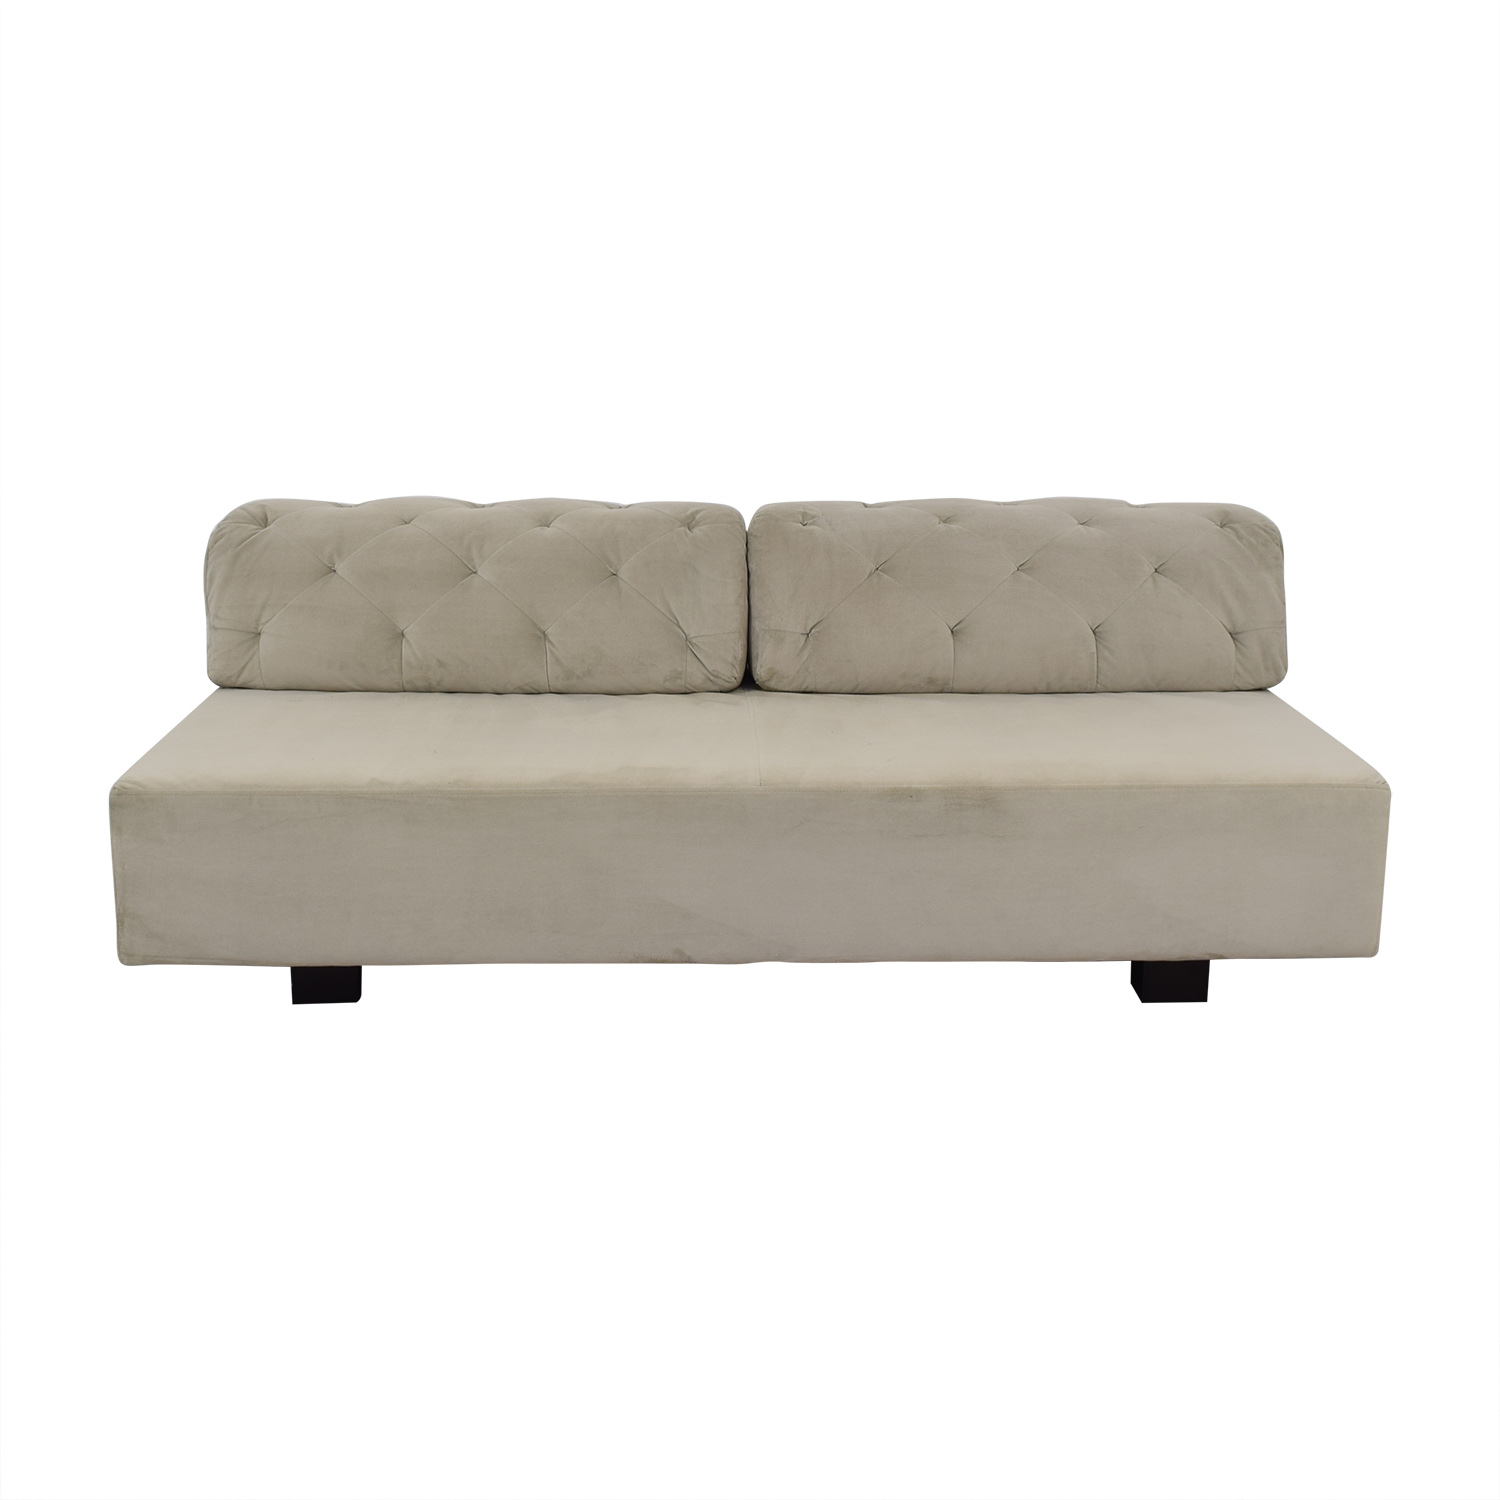 West Elm West Elm Tillary Armless Sofa coupon